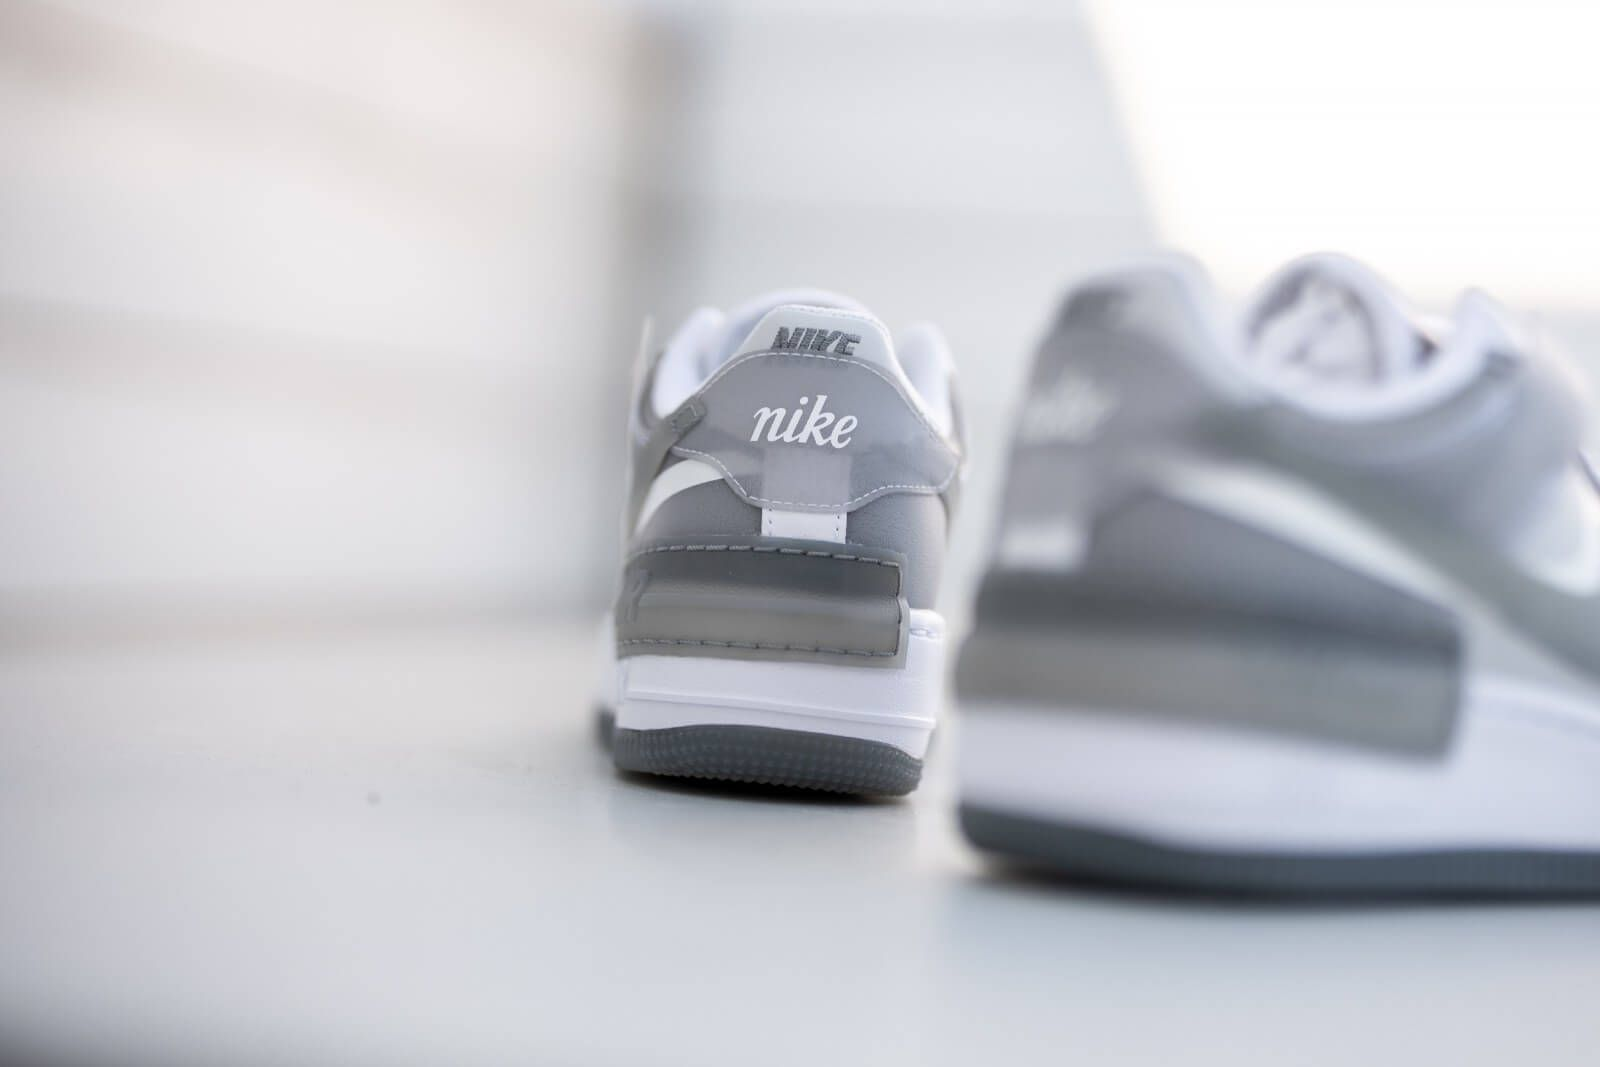 Pin On Shoes Nike air force ones air force 1 puma platform platform sneakers brown and grey white leather sneakers nike nike sb dunks super deal. pin on shoes